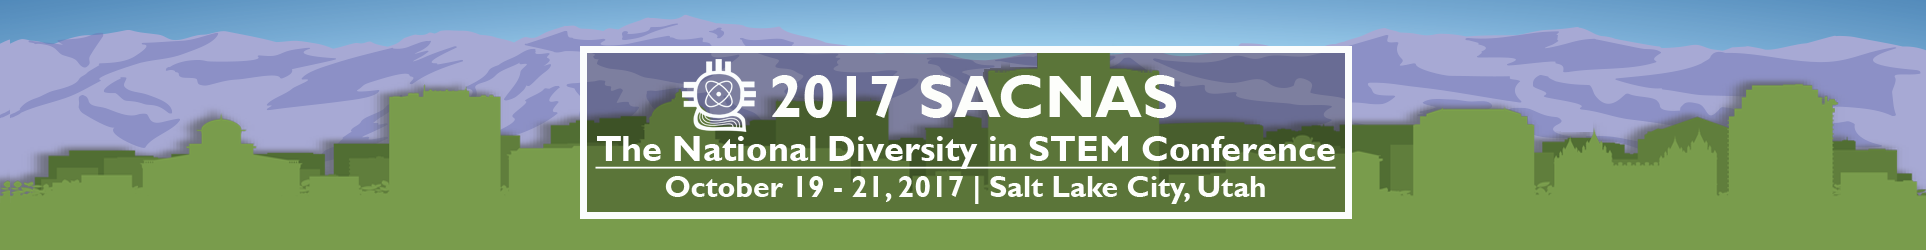 2017 SACNAS - The National Diversity in STEM Conference